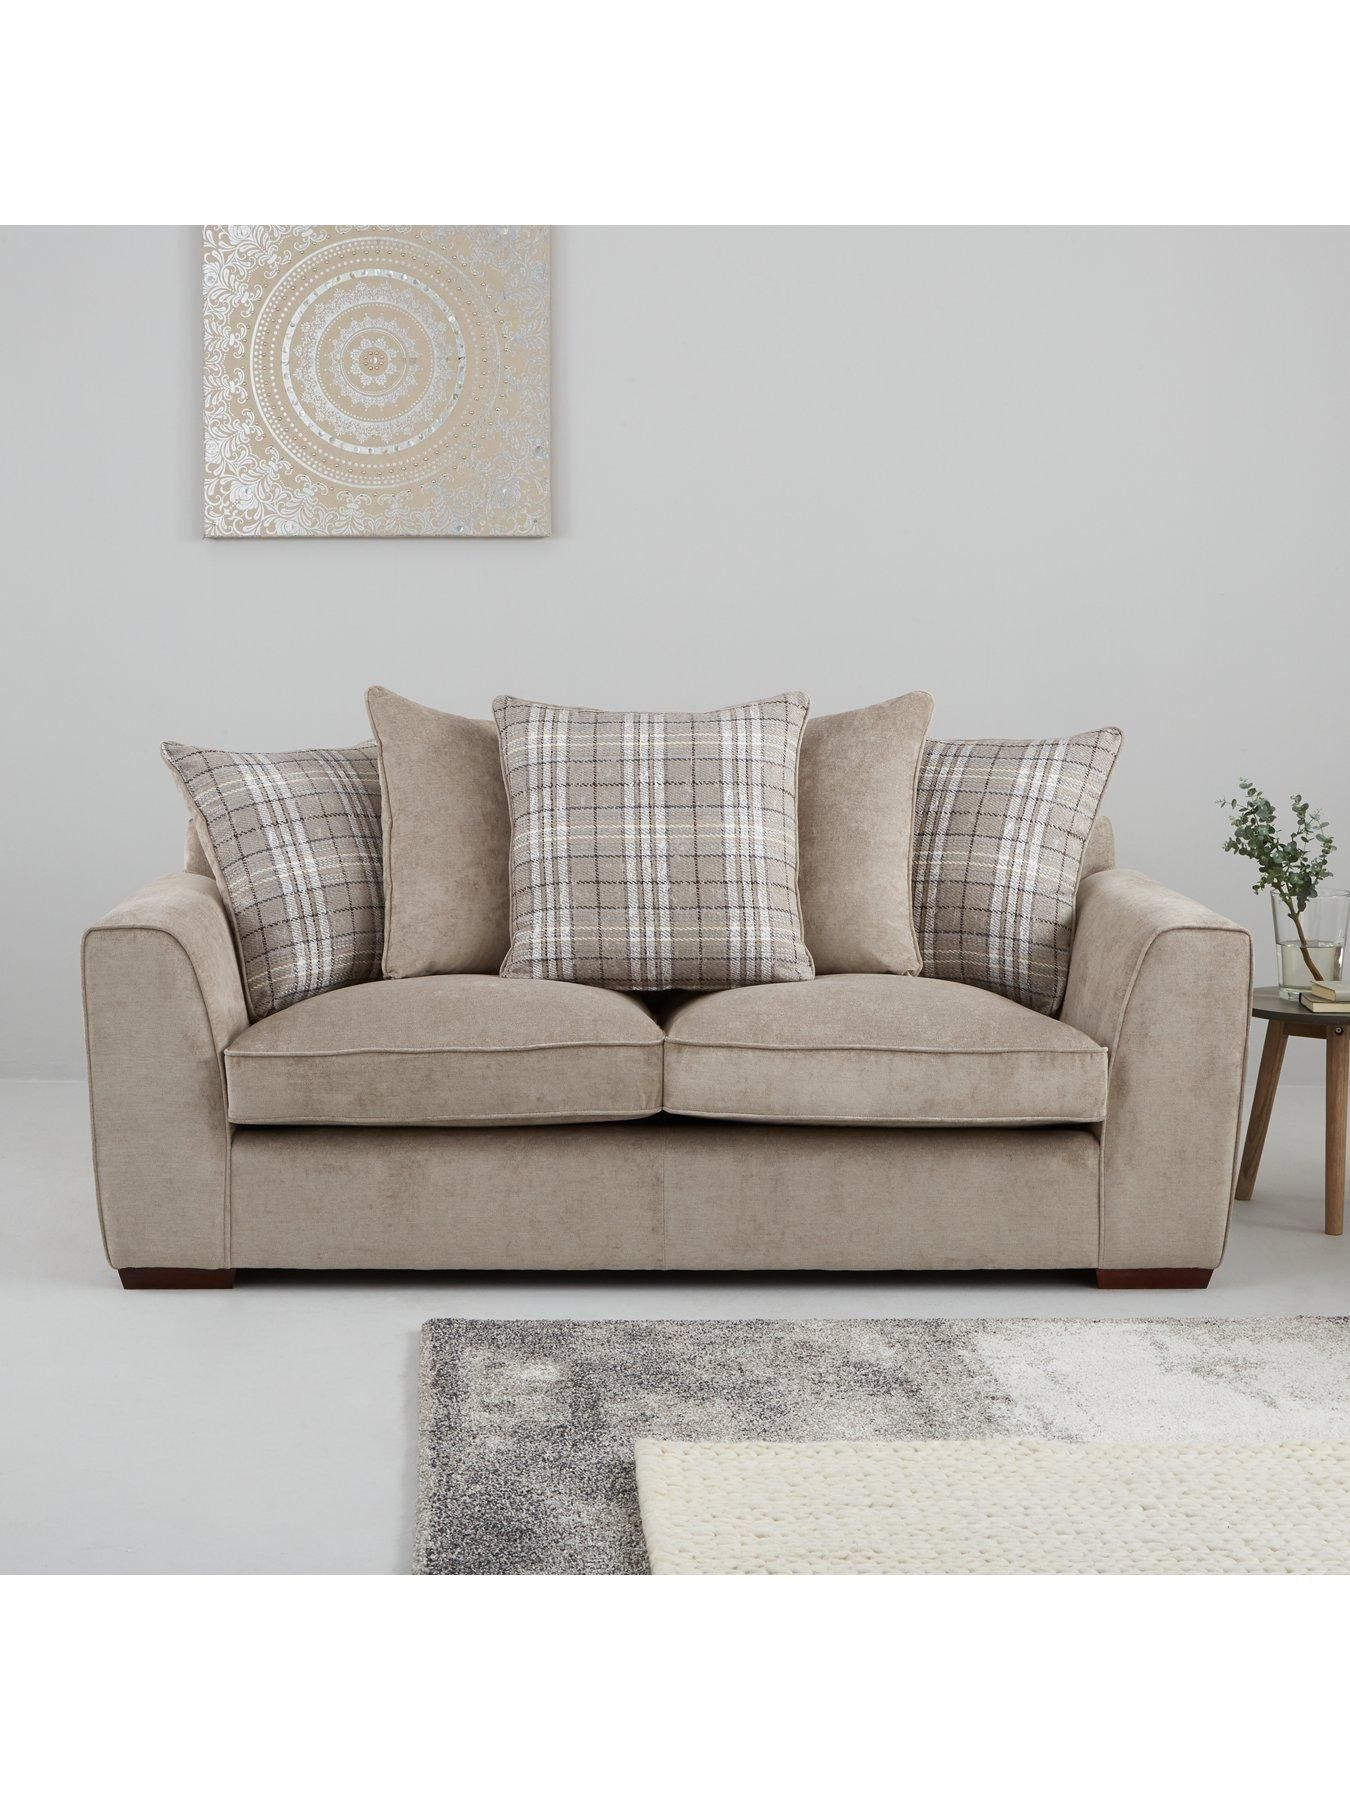 Campbell Fabric 3 Seater 2 Seater Scatter Back Sofa Set Buy And Save Taupe Sofa Set Grey Sofa Set Sofa